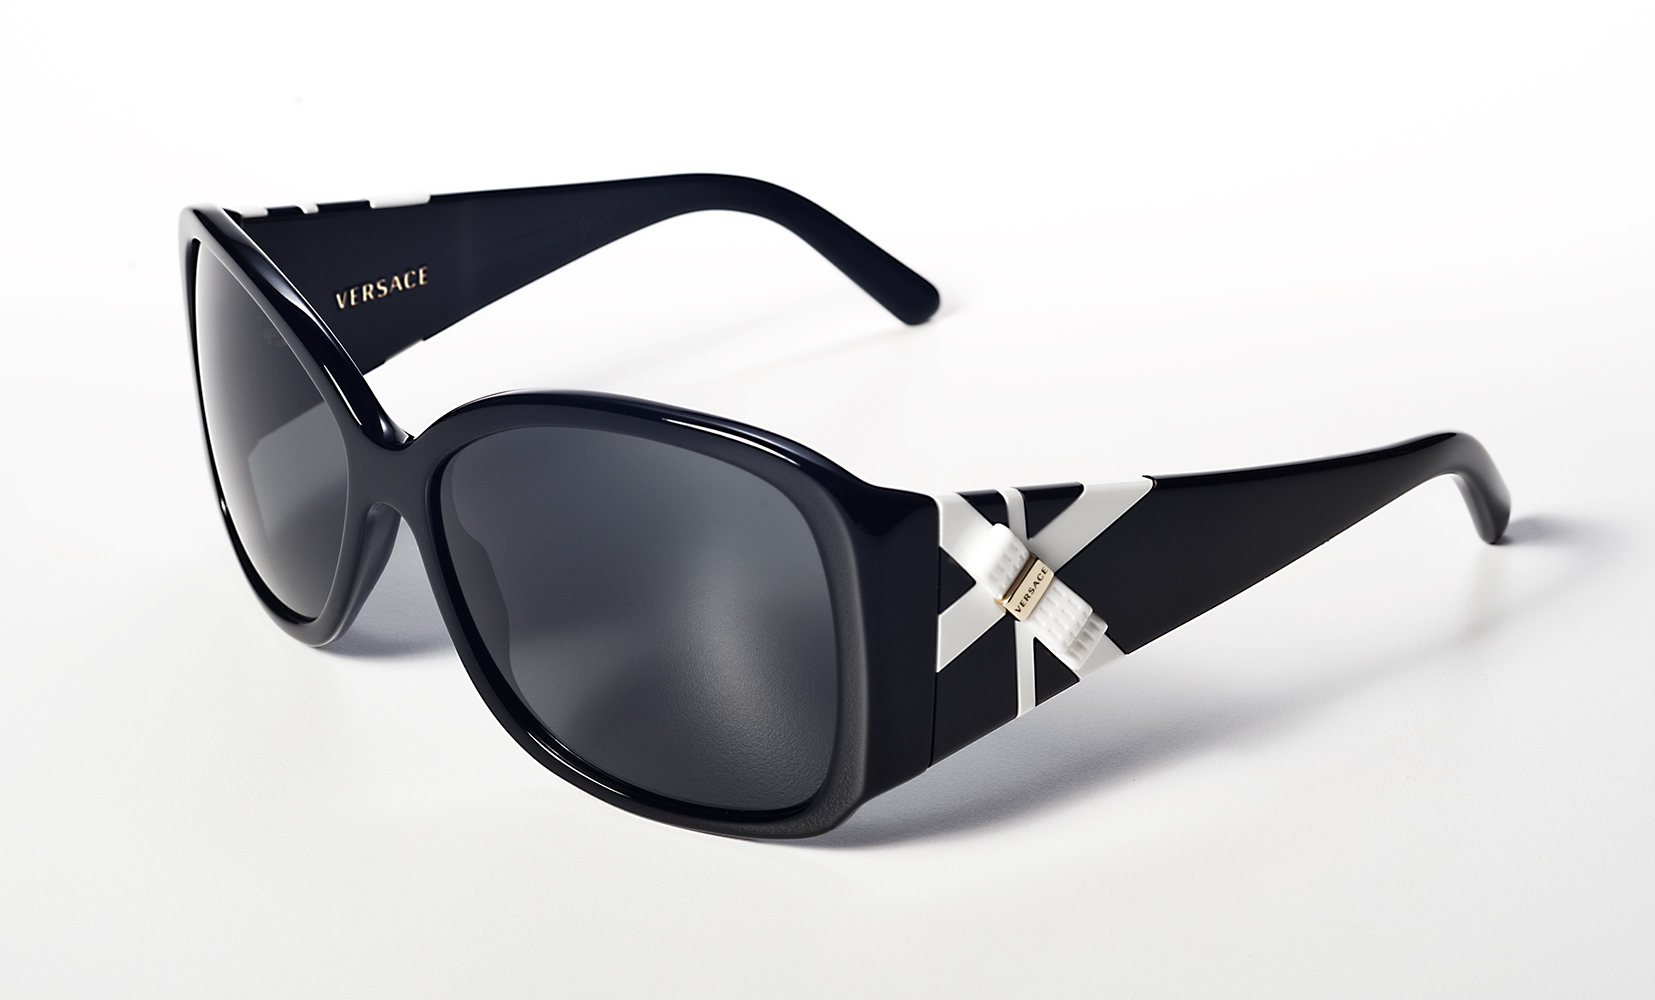 Versace Sunglasses - Product Photo on White Background